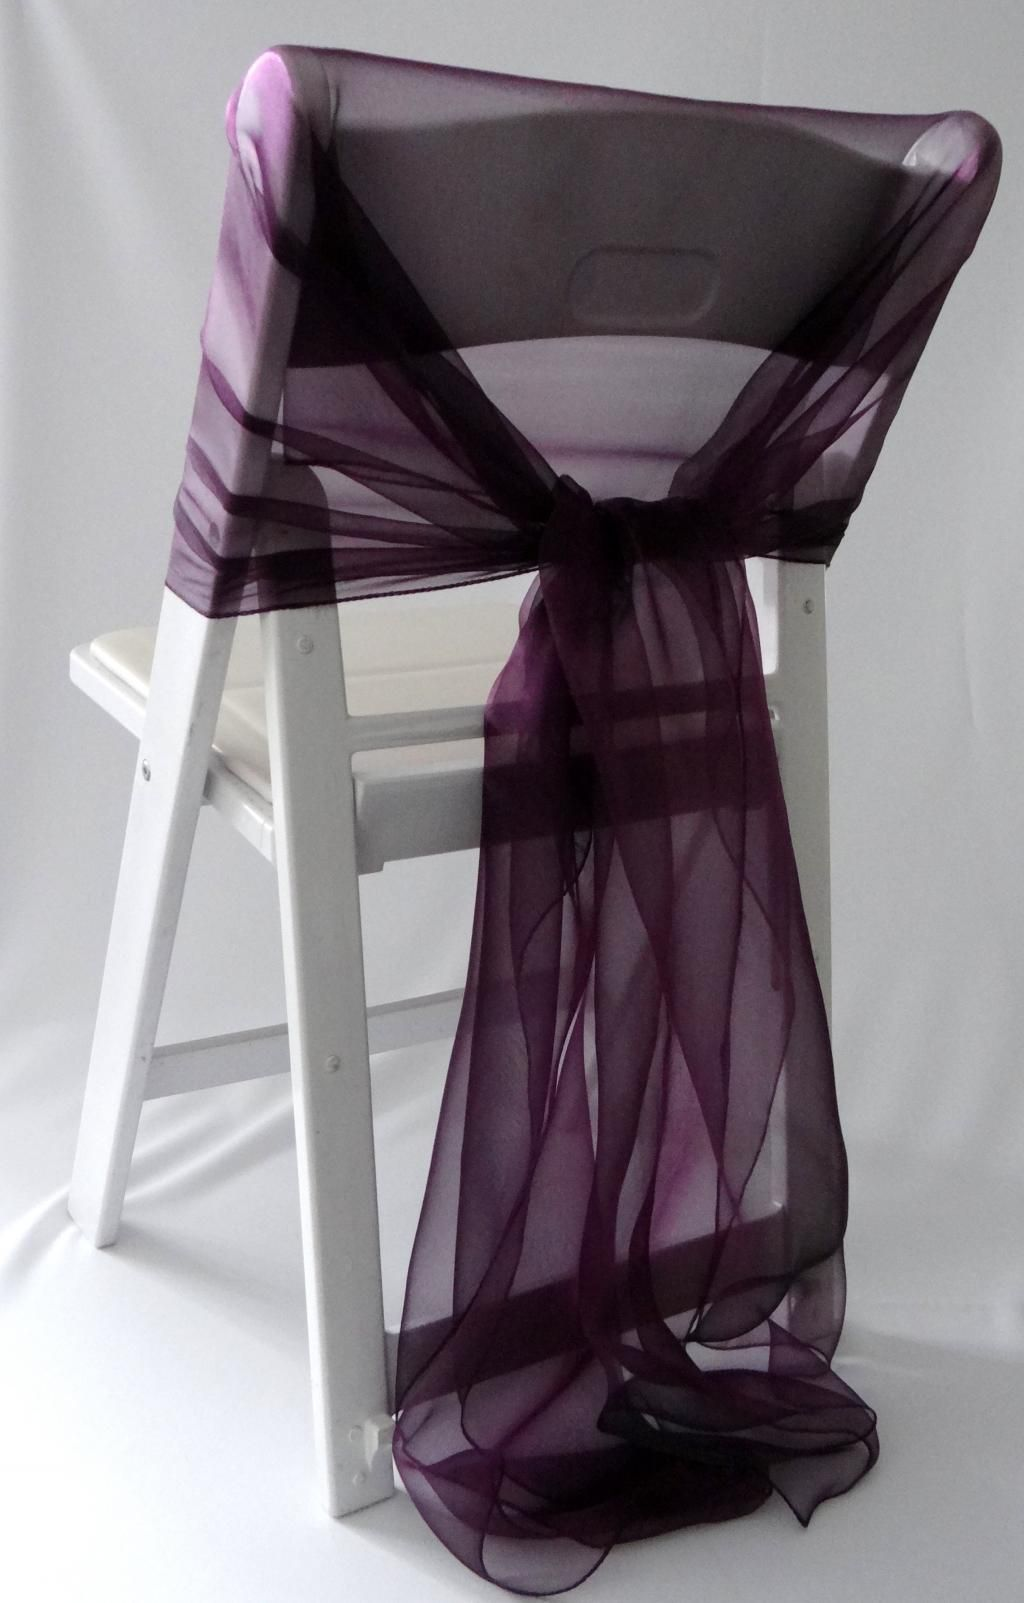 Lux Diy Folding Chair Covers With Purple Ribbons More